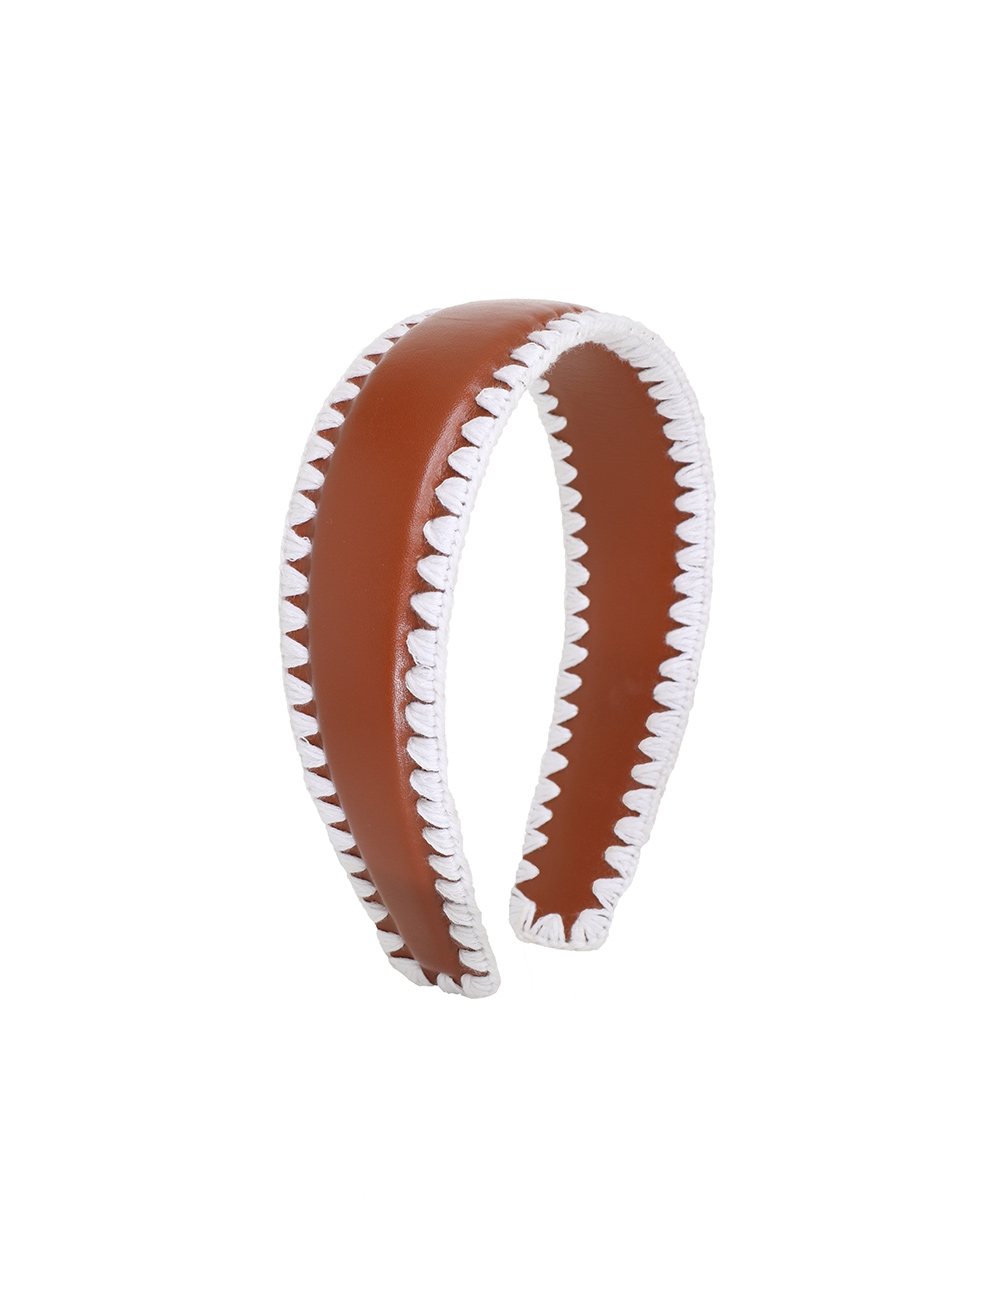 Ric Rac Leather Headband